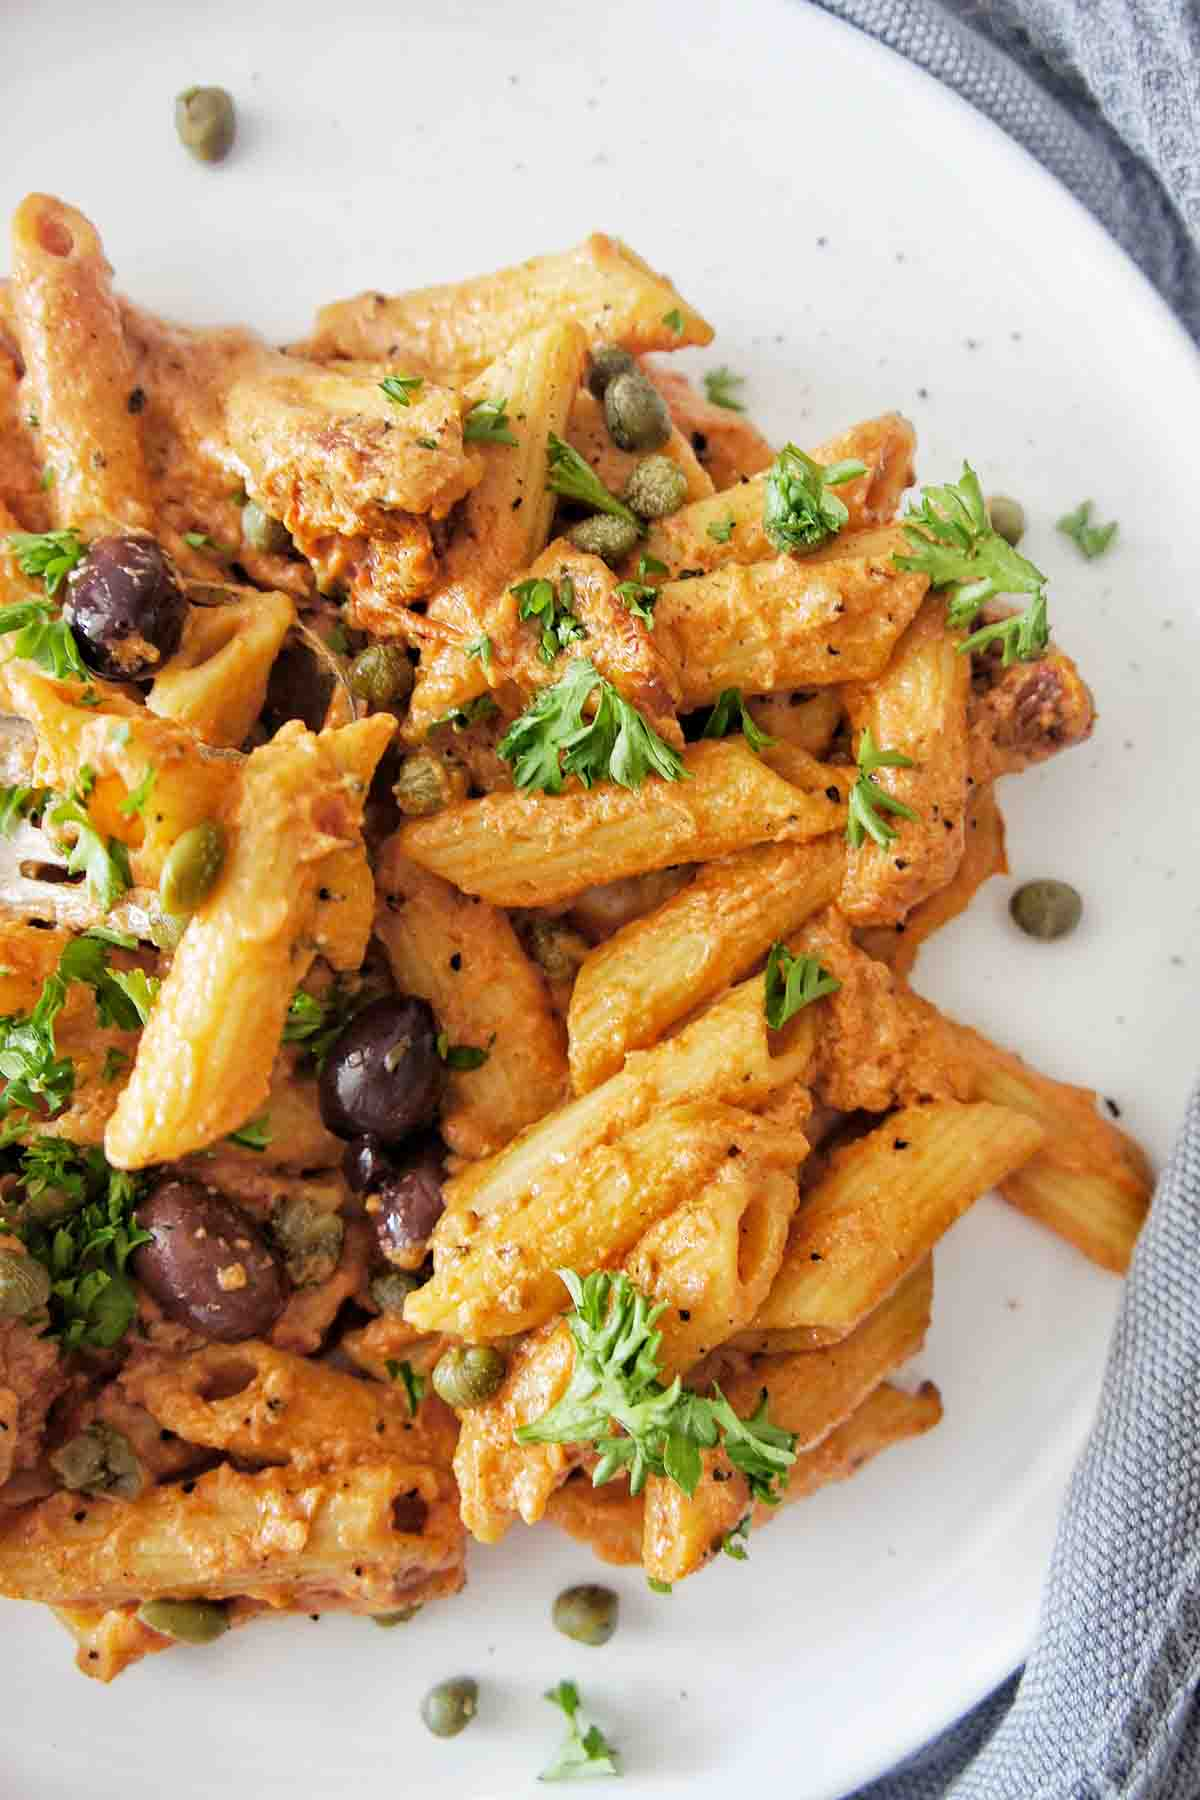 Penne pasta on a white plate with parsley, capers and olives